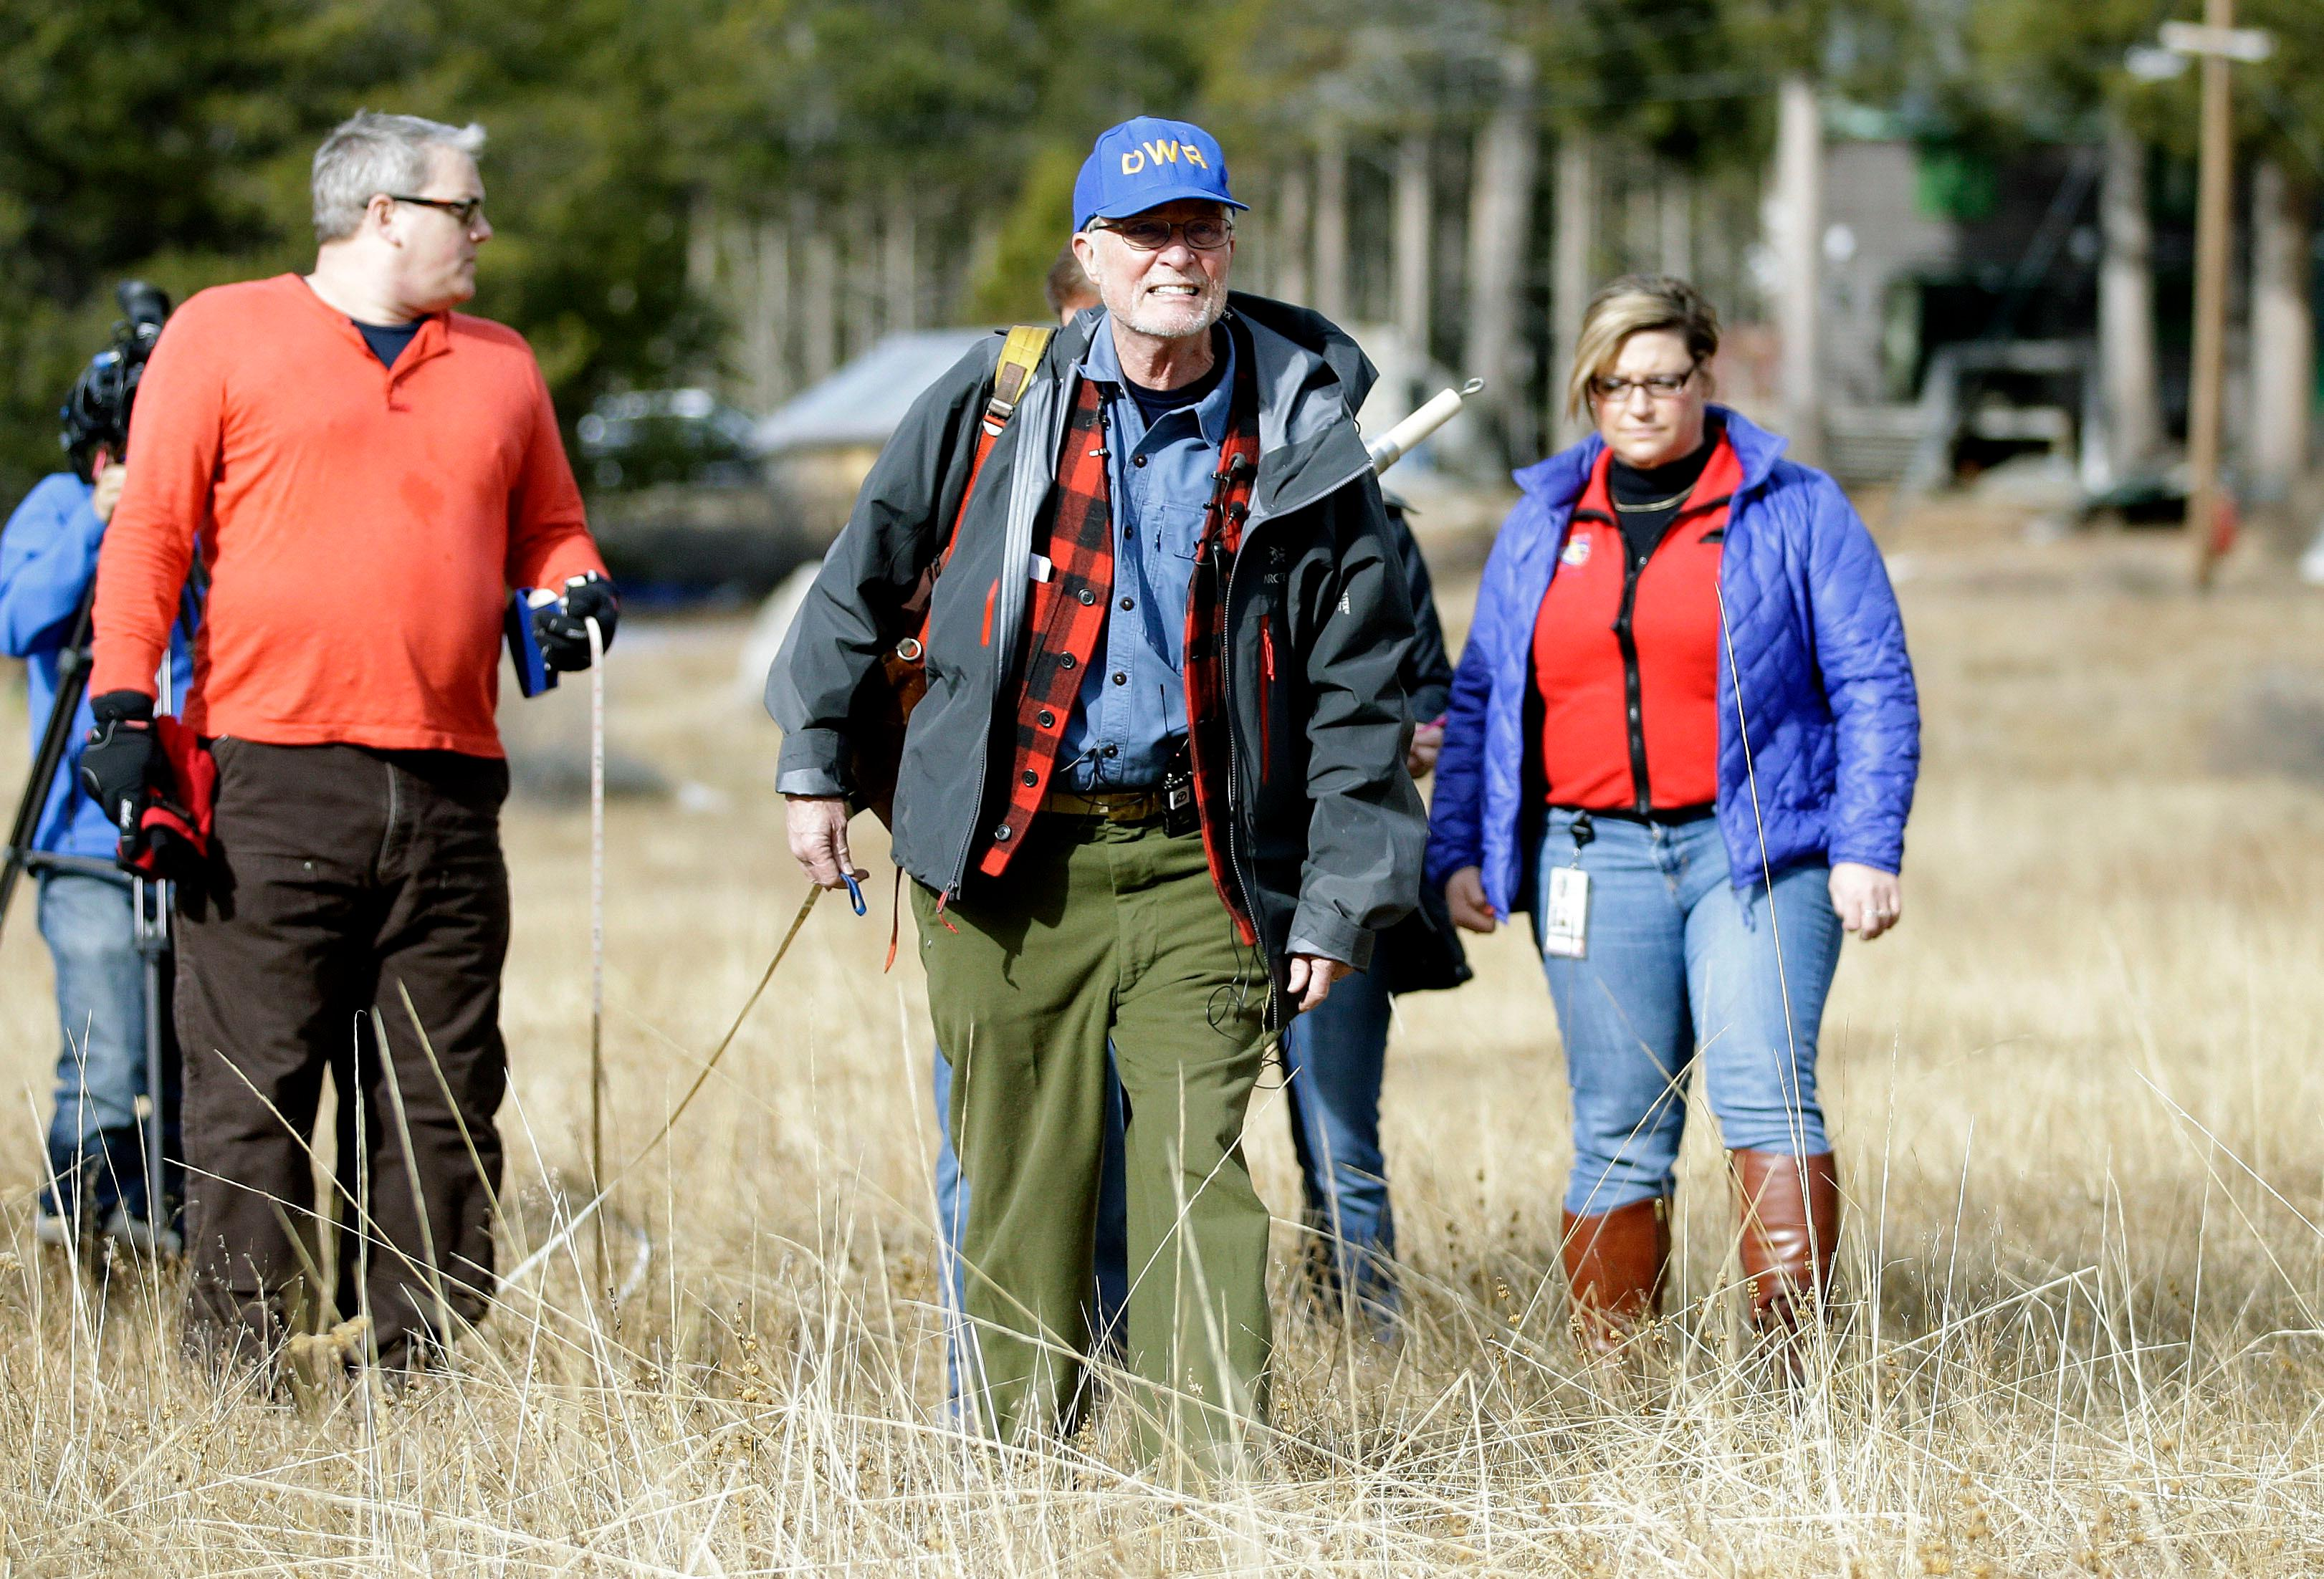 Frank Gehrke, center, chief of the California Cooperative Snow Surveys Program for the Department of Water Resources, crosses a nearly snow barren meadow while conducting the first snow survey of the season at the Phillips Station snow course, Wednesday, Jan. 3, 2018, near Echo Summit, Calif. The snow survey showed the snow pack at this location at 1.3 inches of depth with a water content of .4 inches. California's water managers are saying it's too early yet for fears that the state is sliding back into its historic five-year drought.  (AP Photo/Rich Pedroncelli)